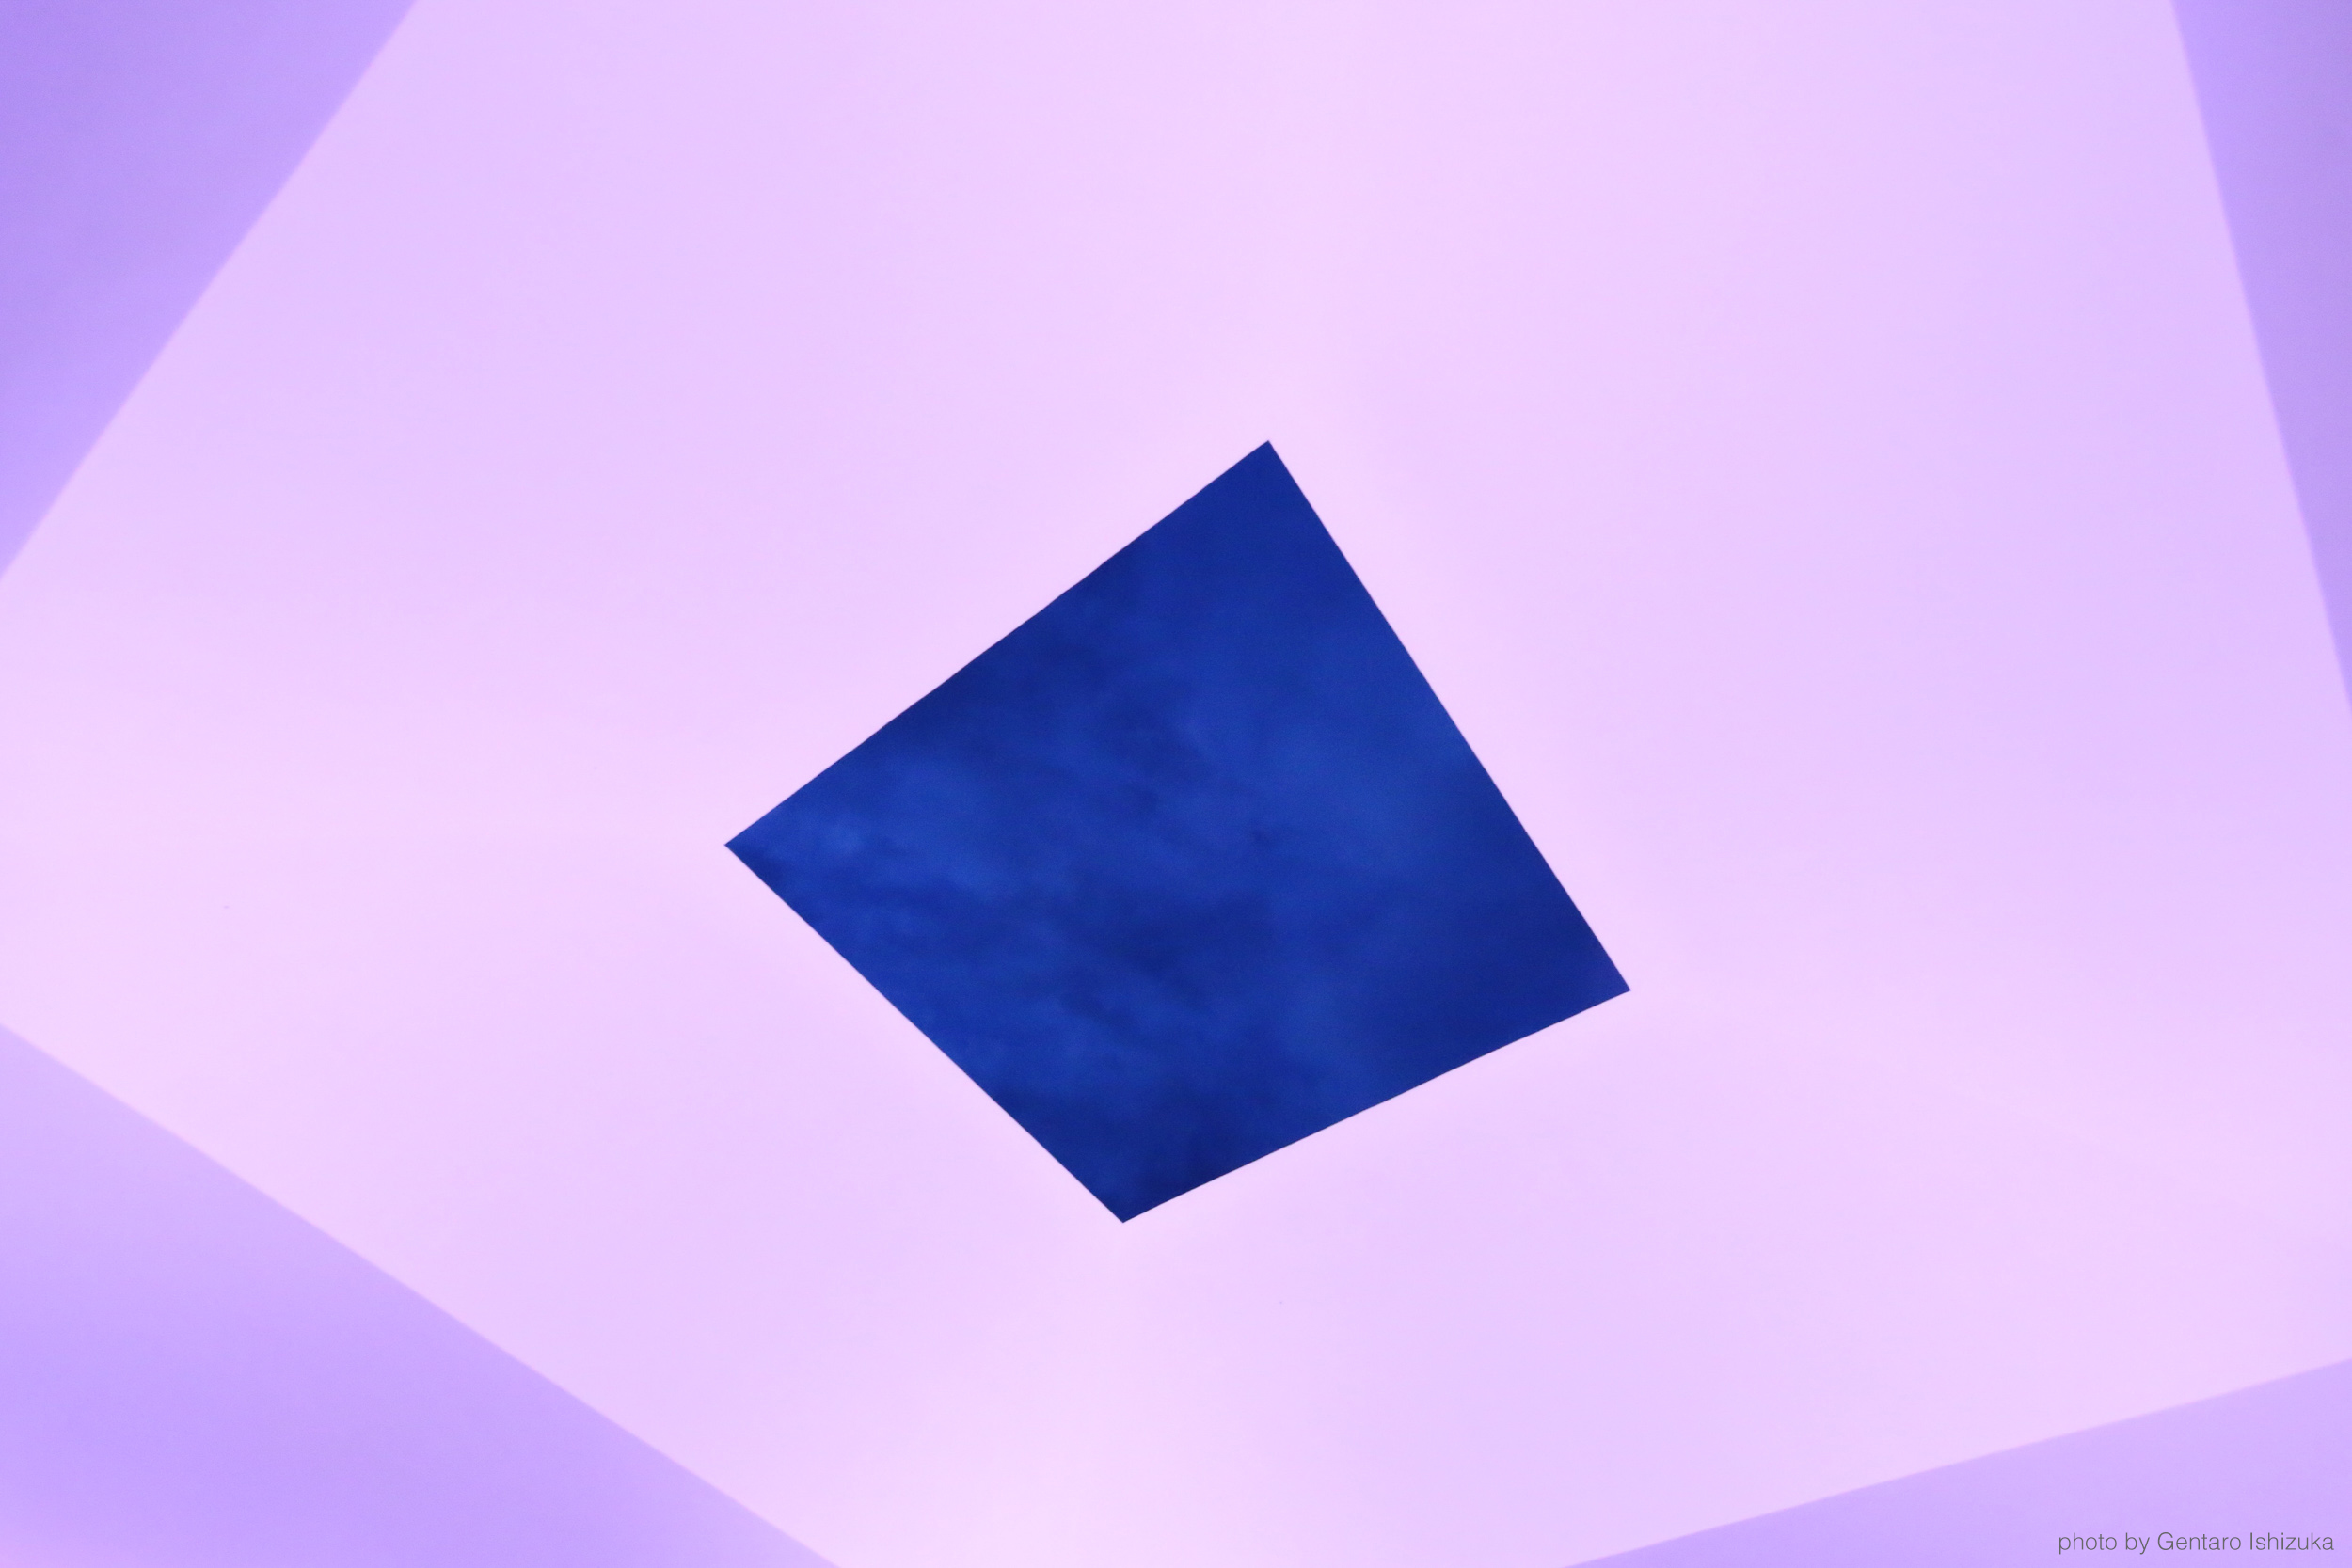 House of Light - James Turrell-4 HERO copy.jpg